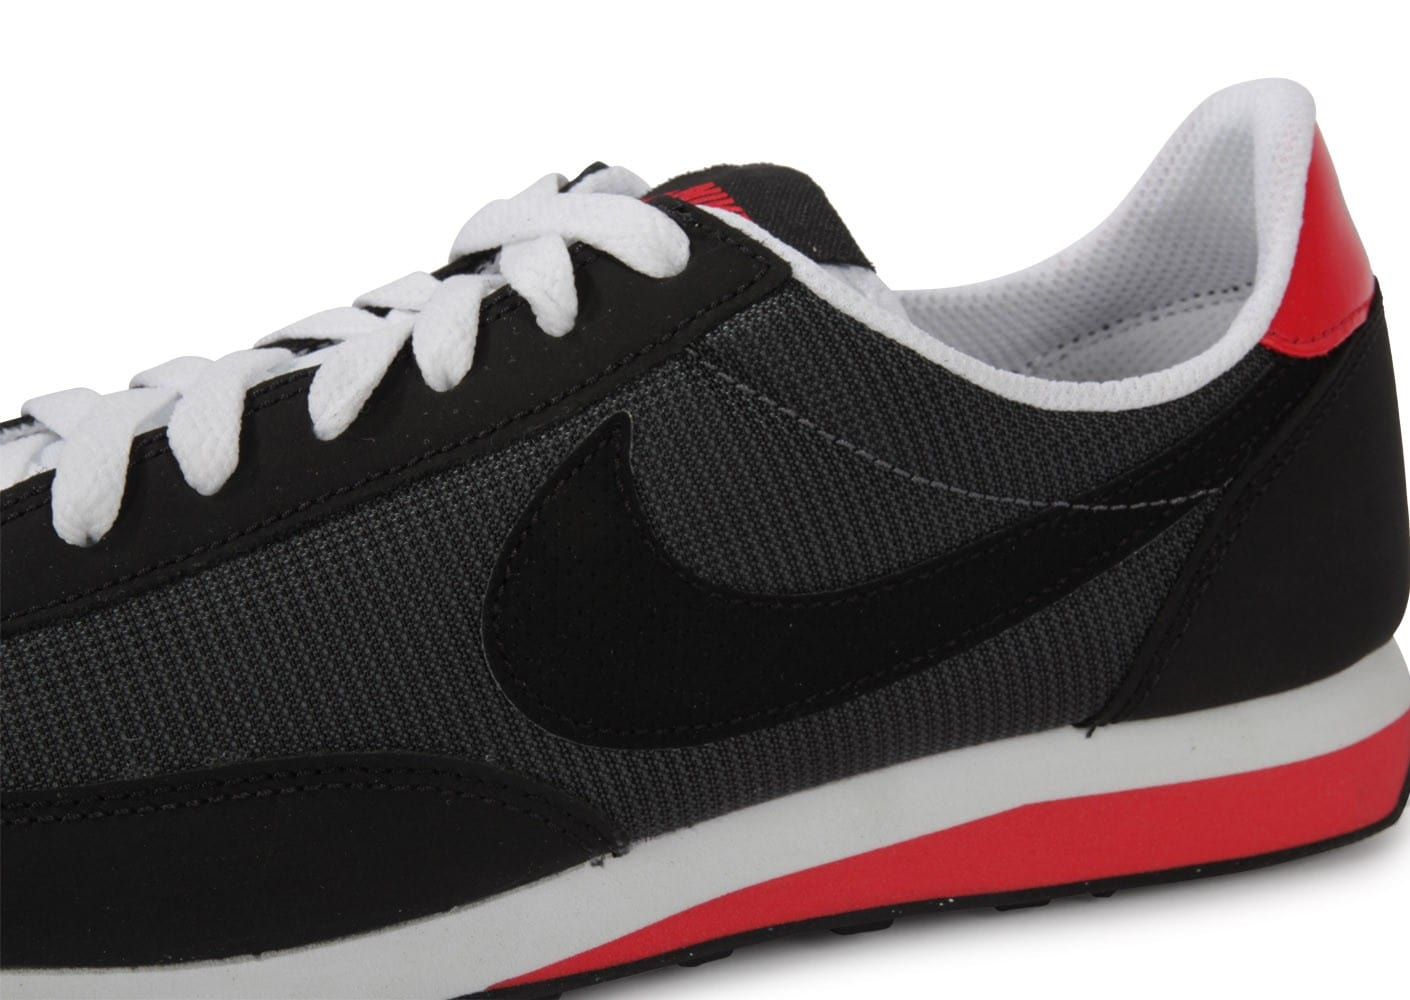 free shipping 1ae4a f57c4 ... Chaussures Nike Elite Si Noir Rouge vue dessus